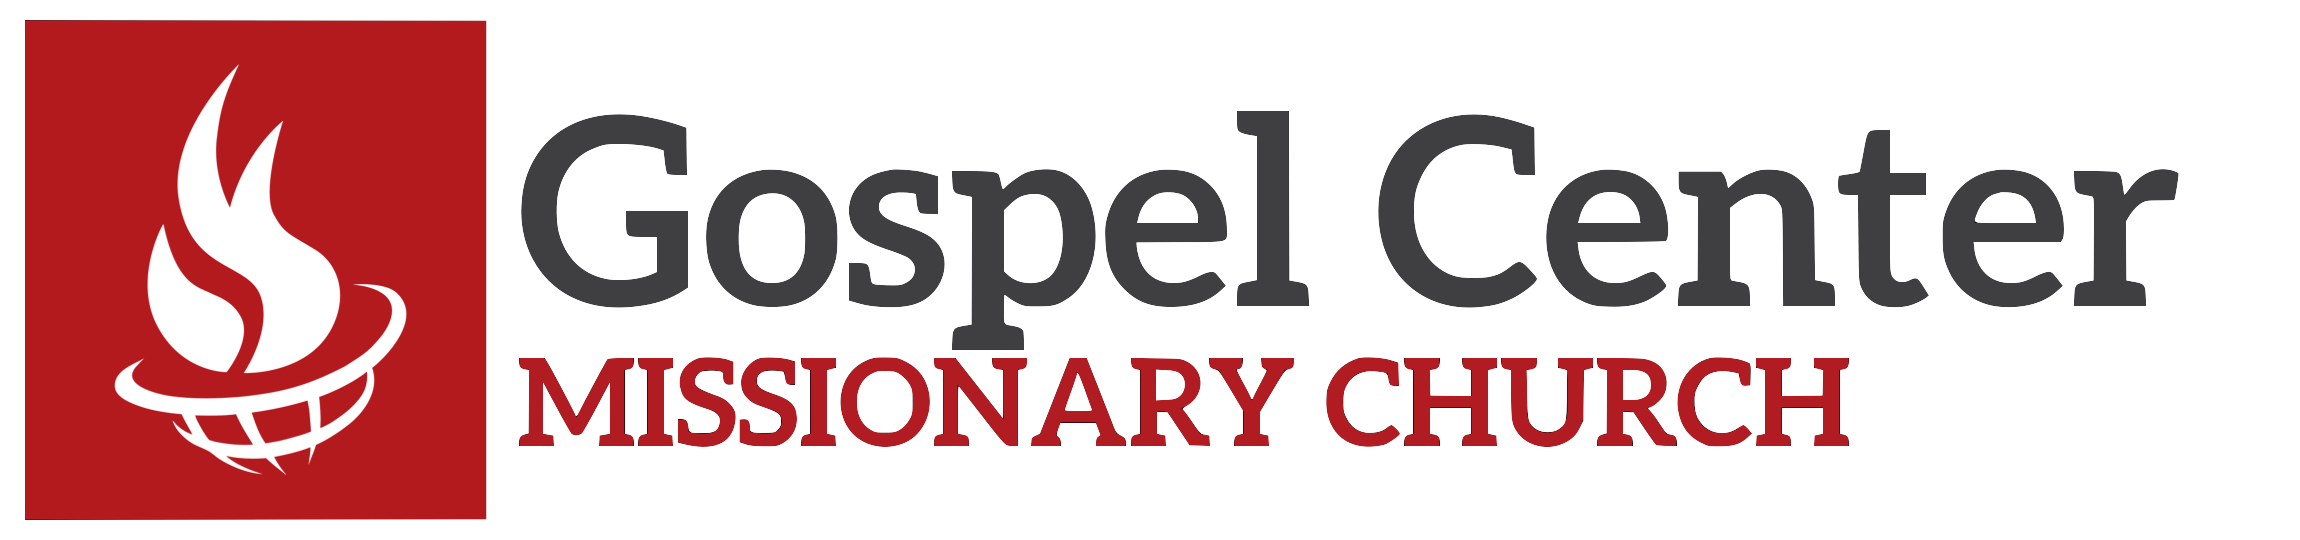 Gospel Center Missionary Church